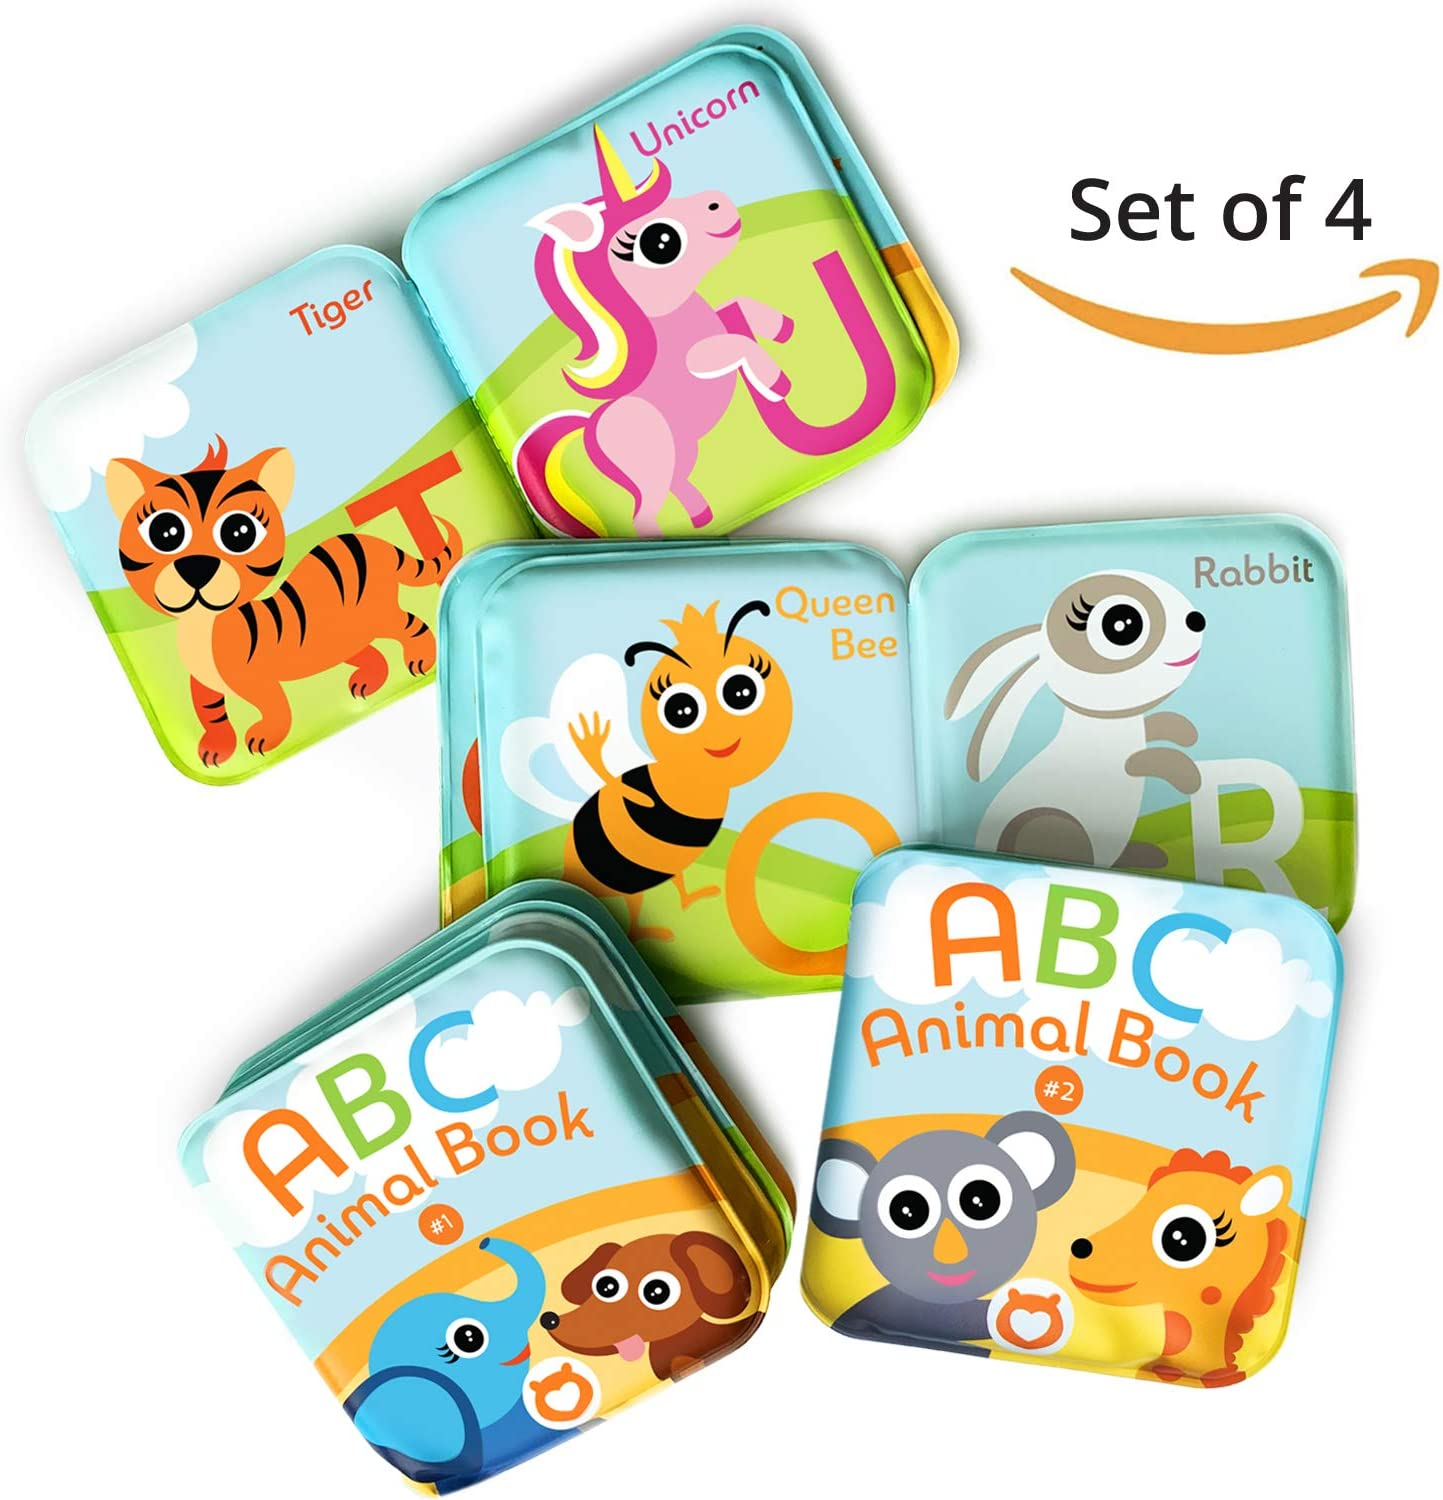 Waterproof Bath Time Baby Books C Xiaoyu Floating Baby Bath Books Pack of 2 Kids Learning Bath Toys